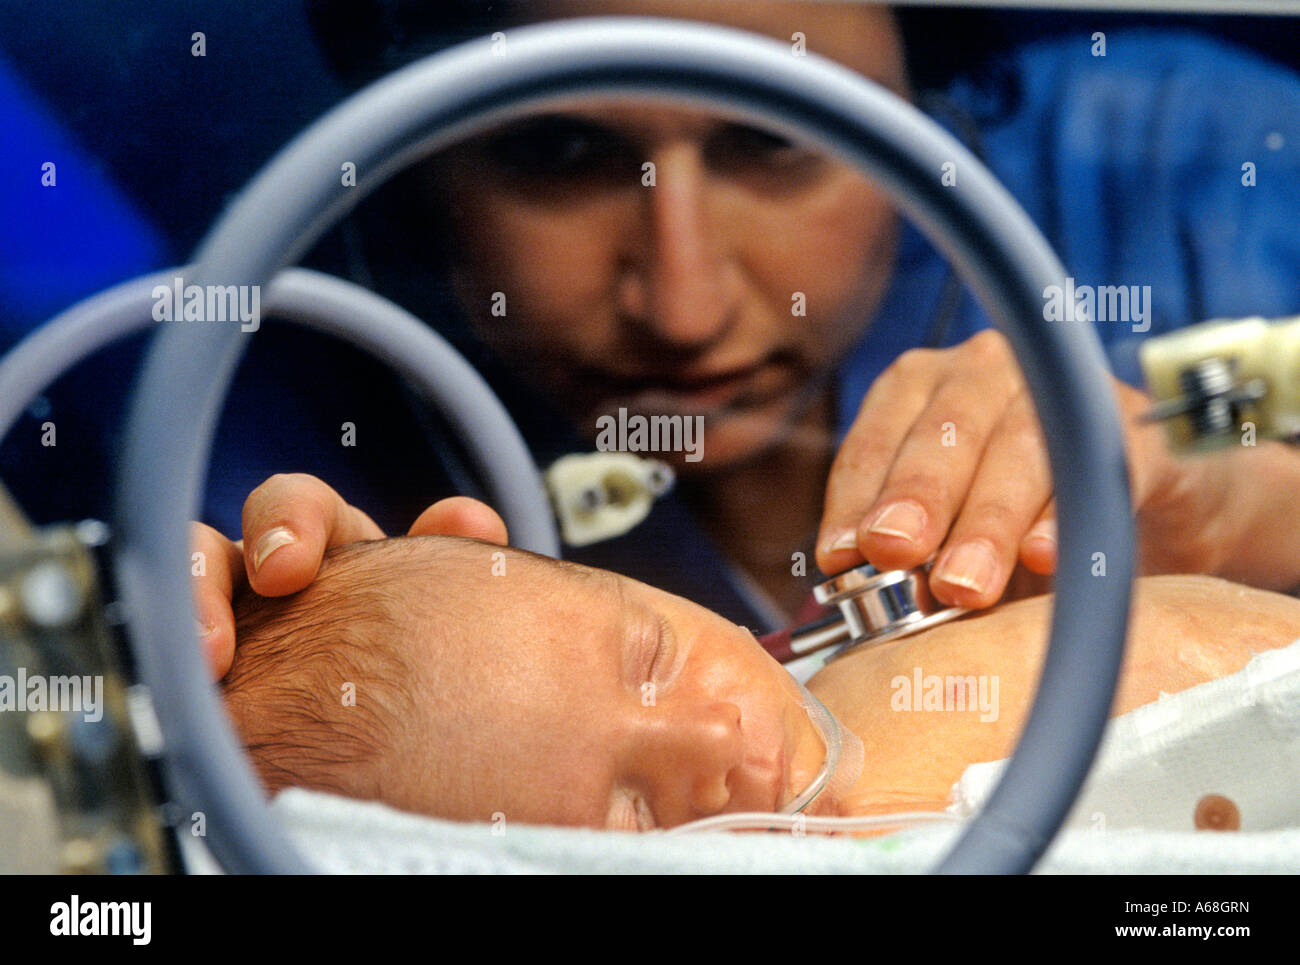 Nurse attends premature infant in an incubator in neonatal intensive ...